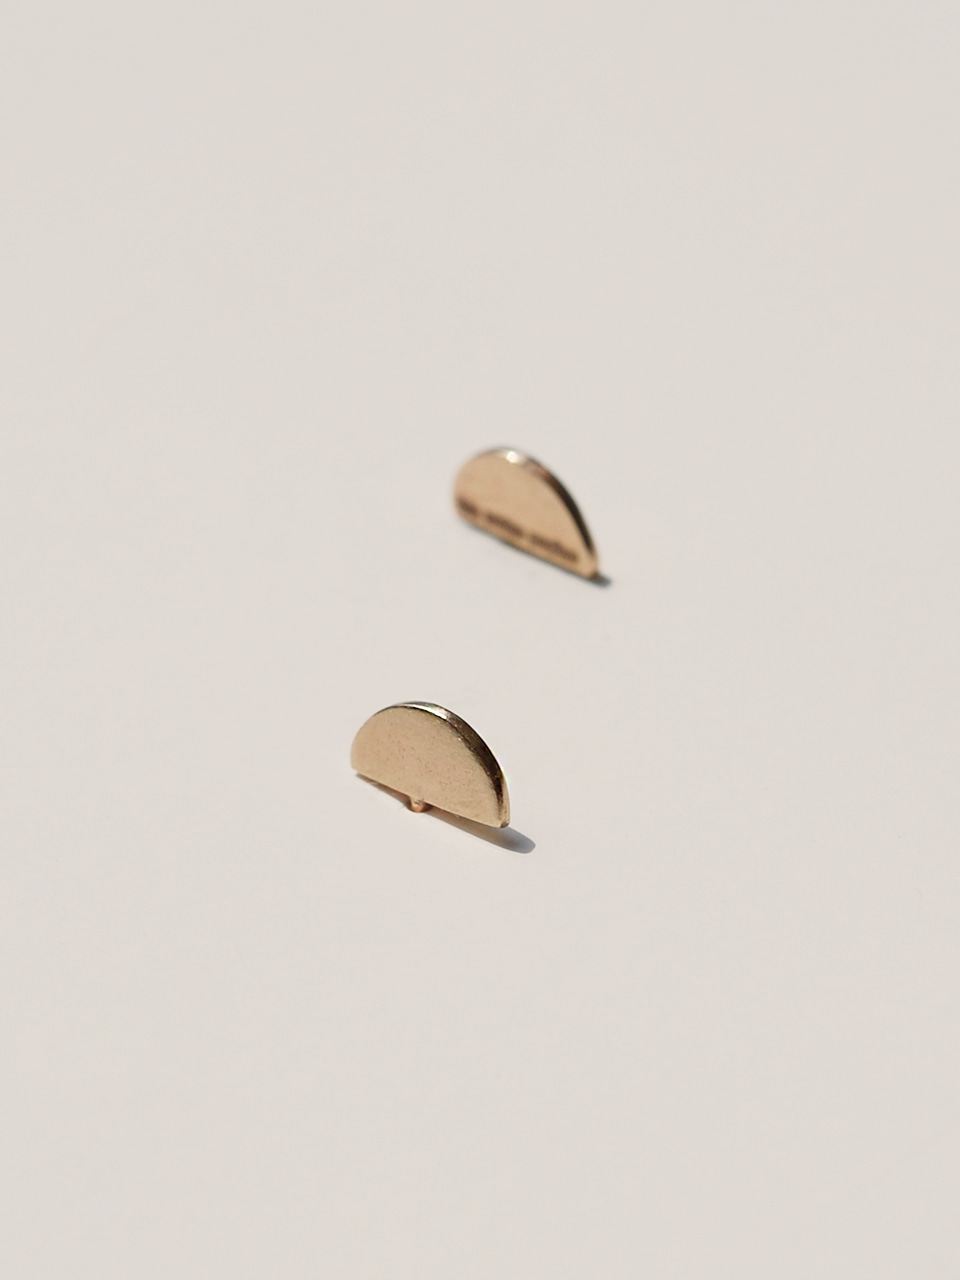 Tiny half moon 14k gold earrings 하프문 14k 귀걸이